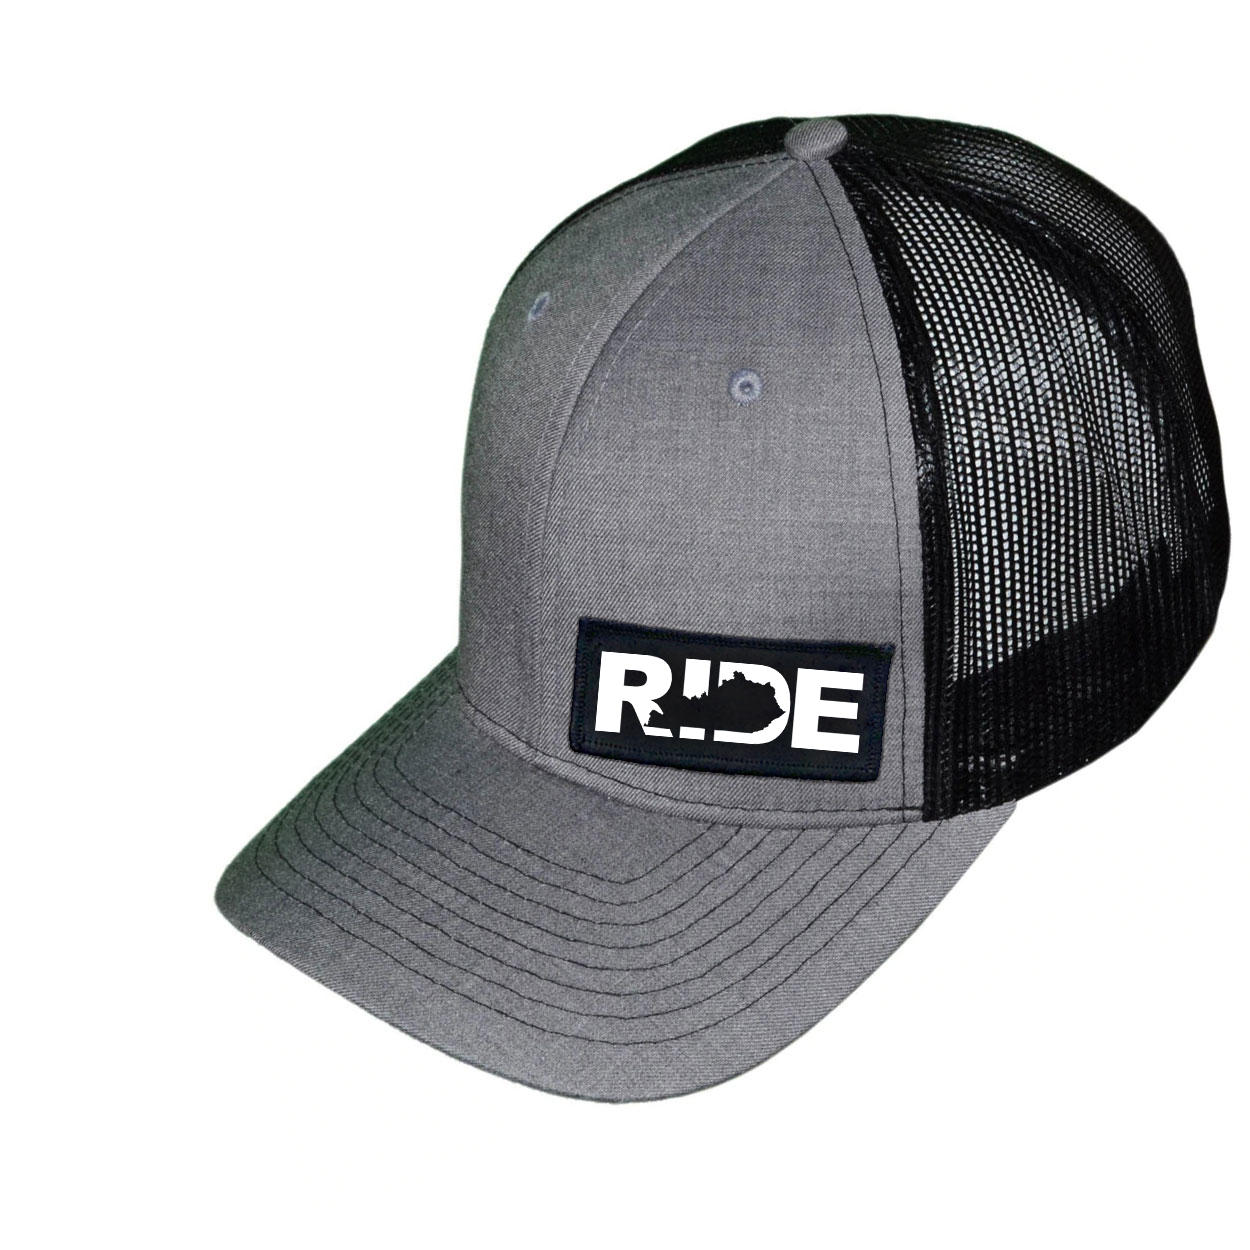 Ride Kentucky Night Out Woven Patch Snapback Trucker Hat Heather Gray/Black (White Logo)